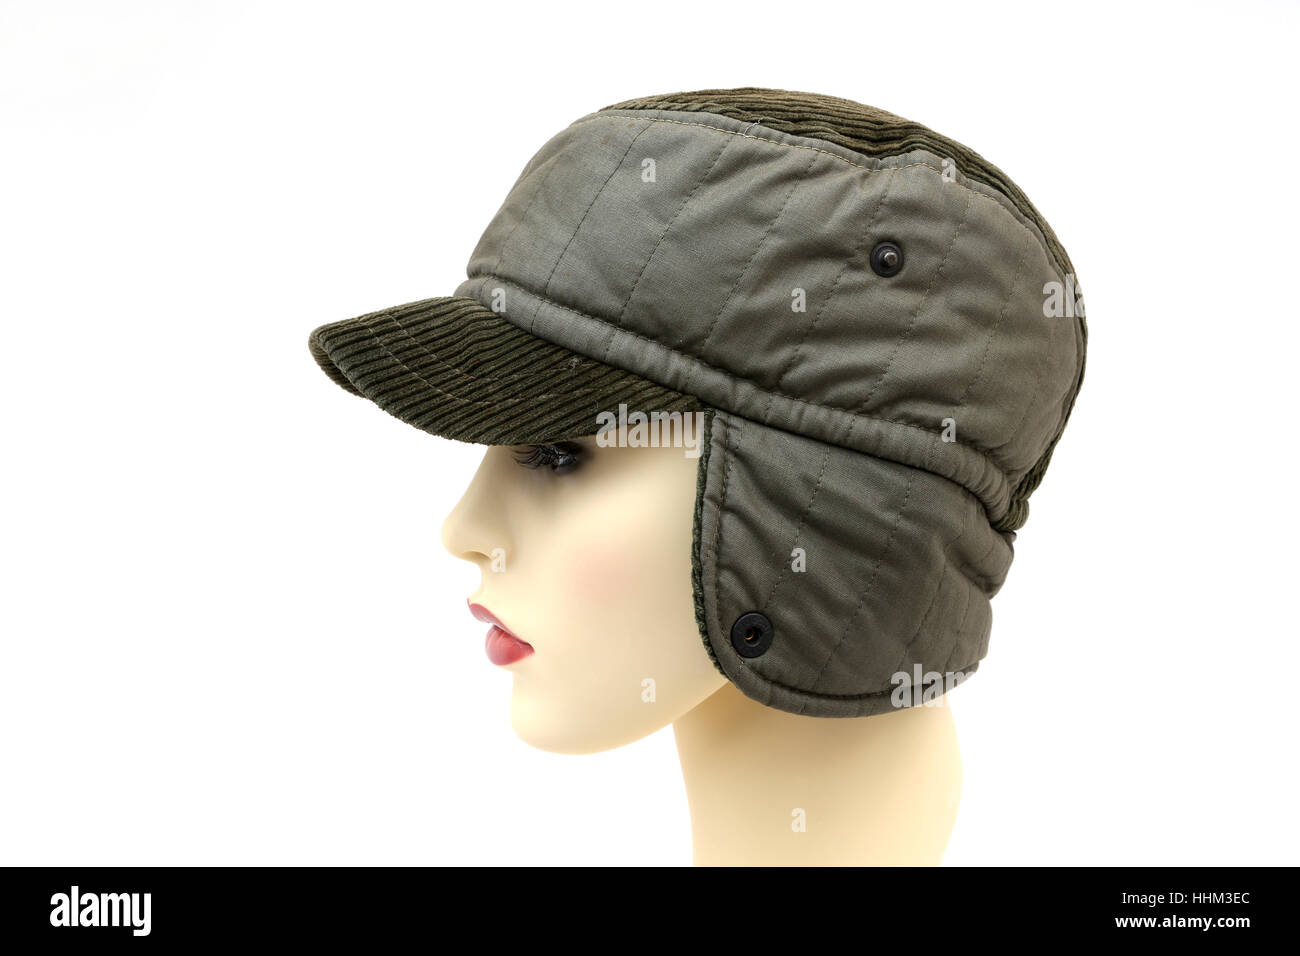 Winter Cap With Ear Flaps Stock Photo  131363524 - Alamy ddb31e28a05